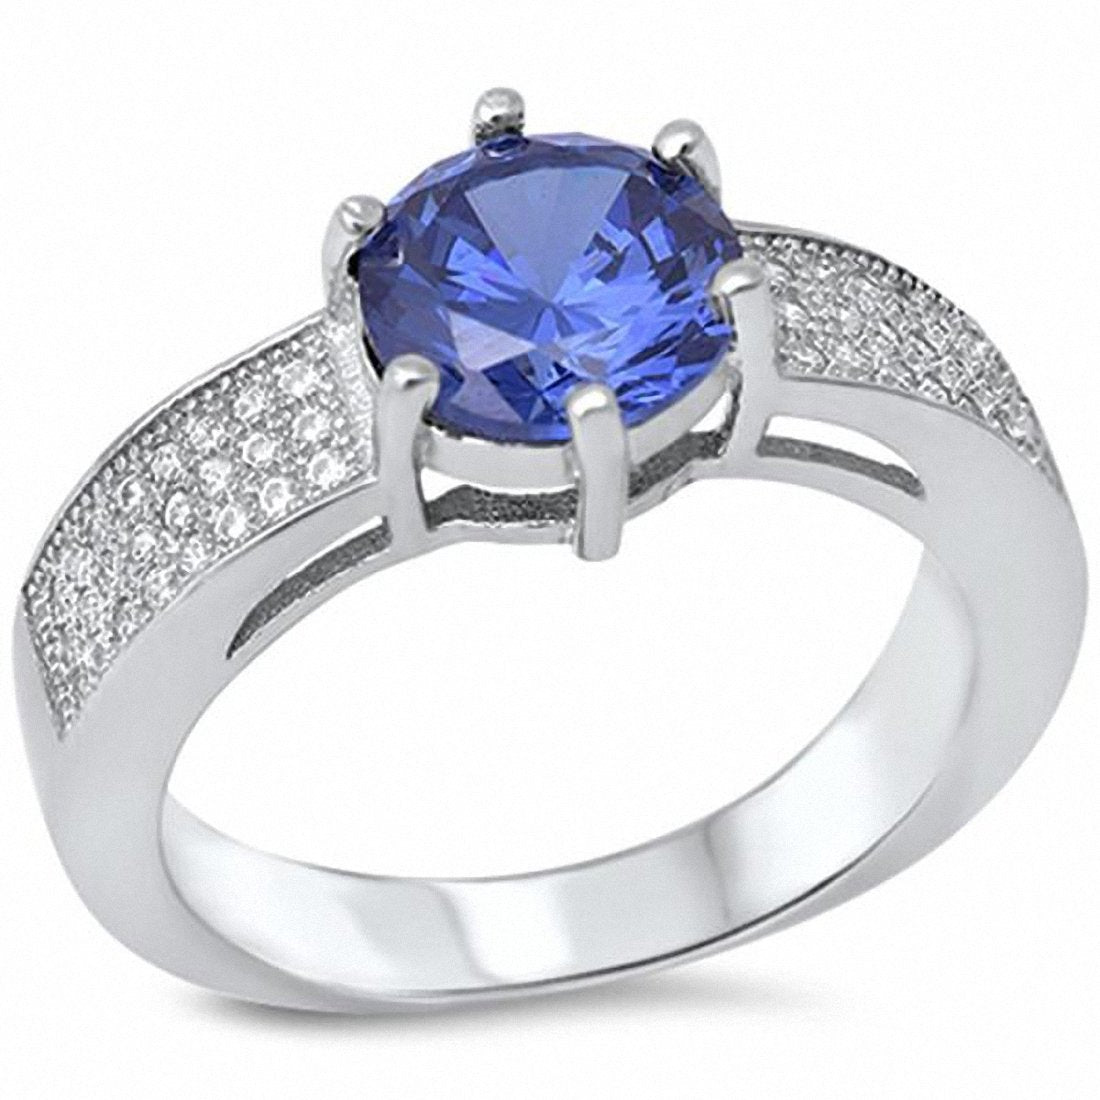 Solitaire Accent Wedding Enagement Ring Round Simulated Stone 925 Sterling Silver Choose Color